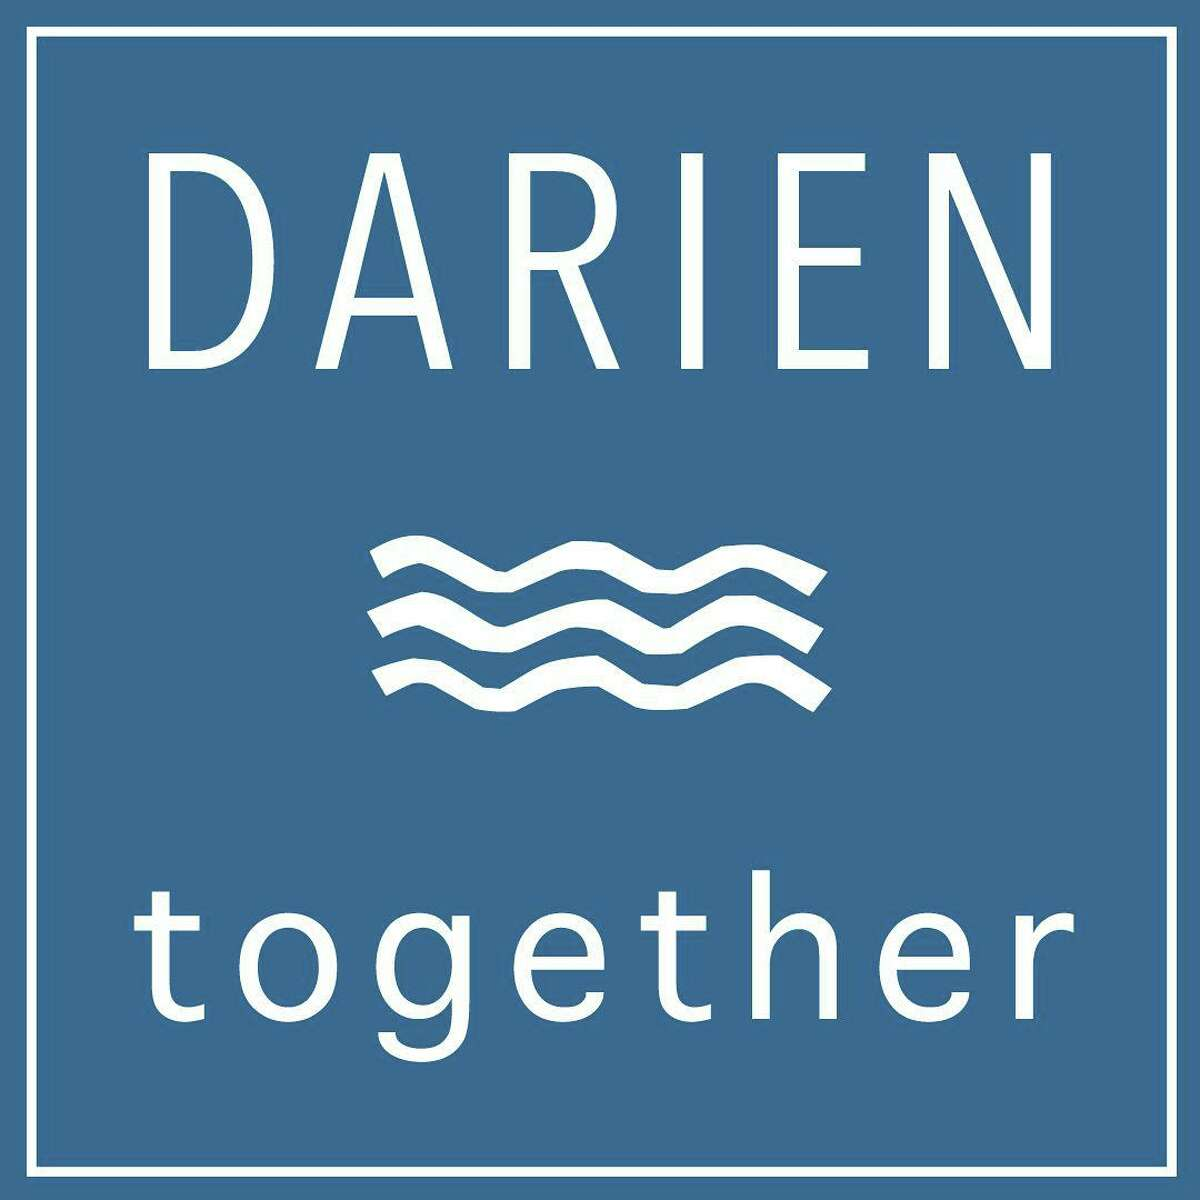 The Corbin District is teaming up with the Darien Chamber of Commerce for a shopping contest this holiday season in Darien.